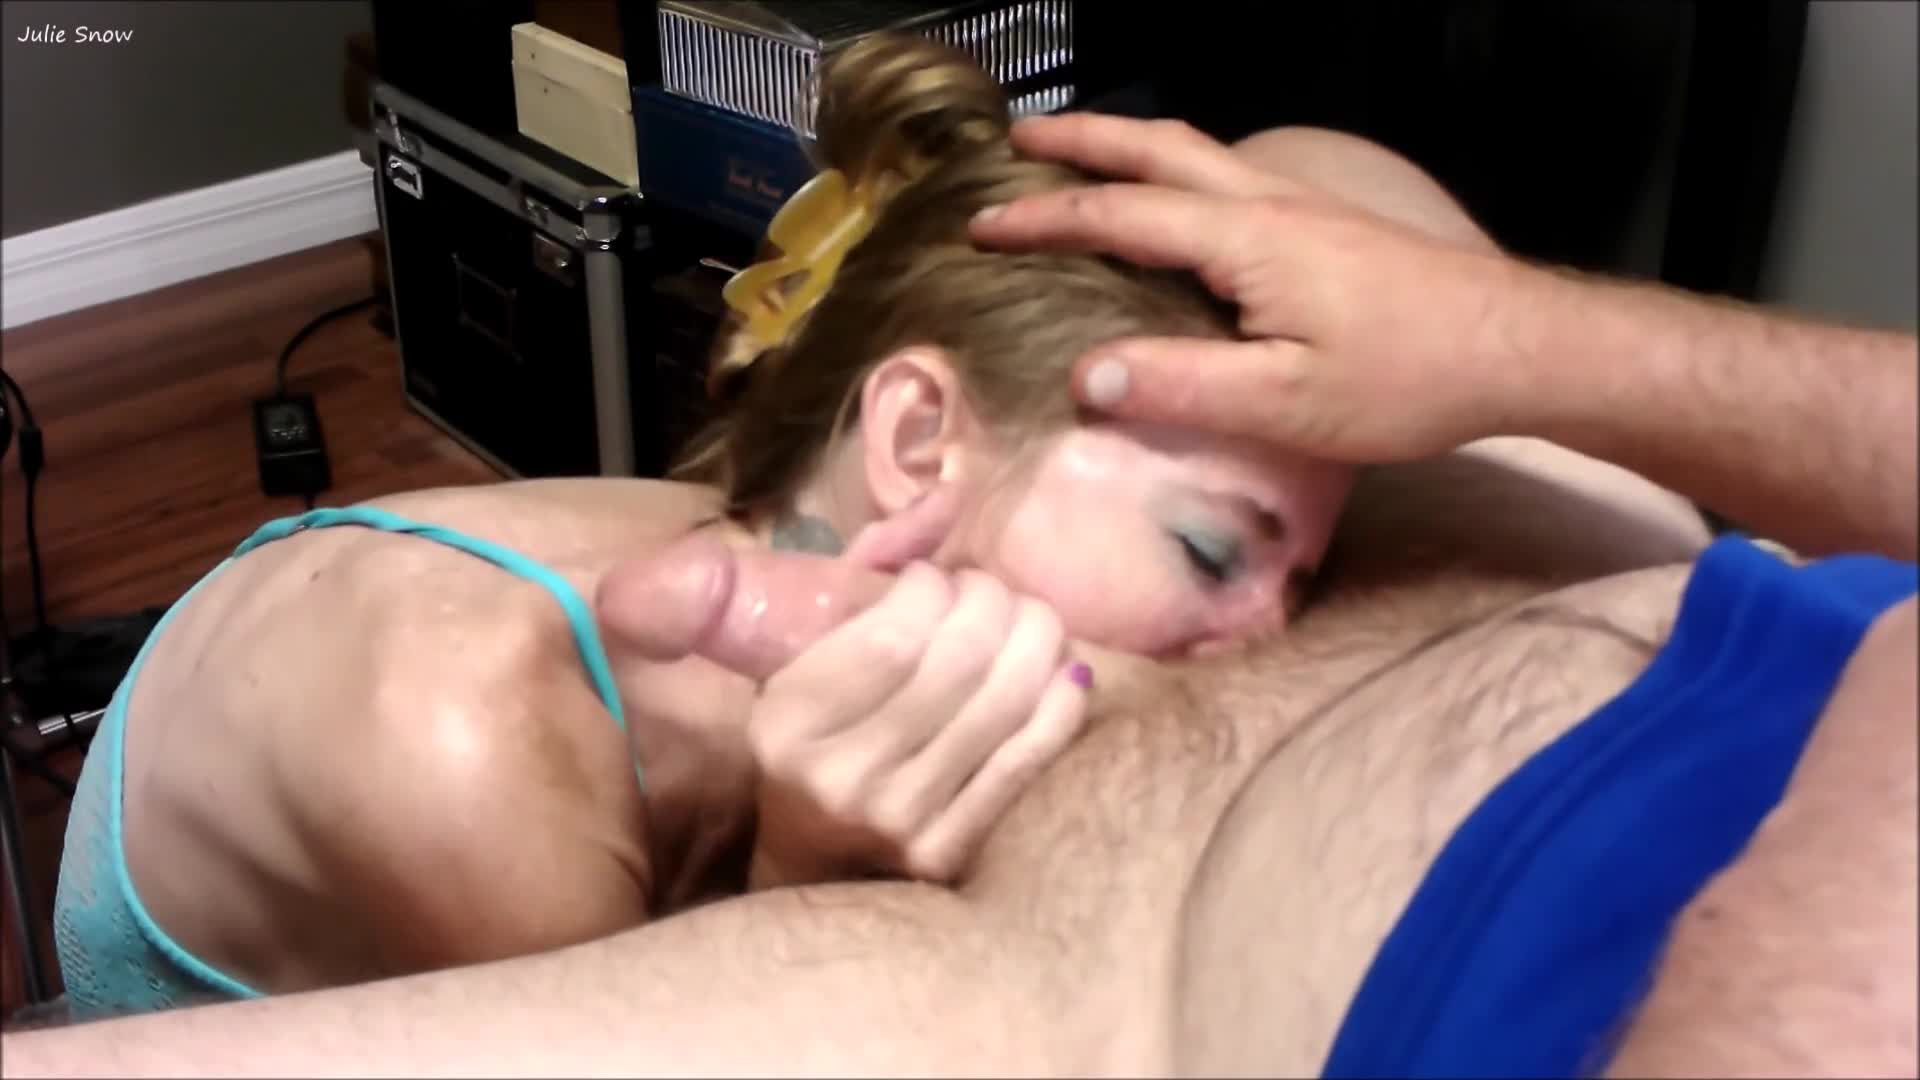 She Sucking Dick The Bed